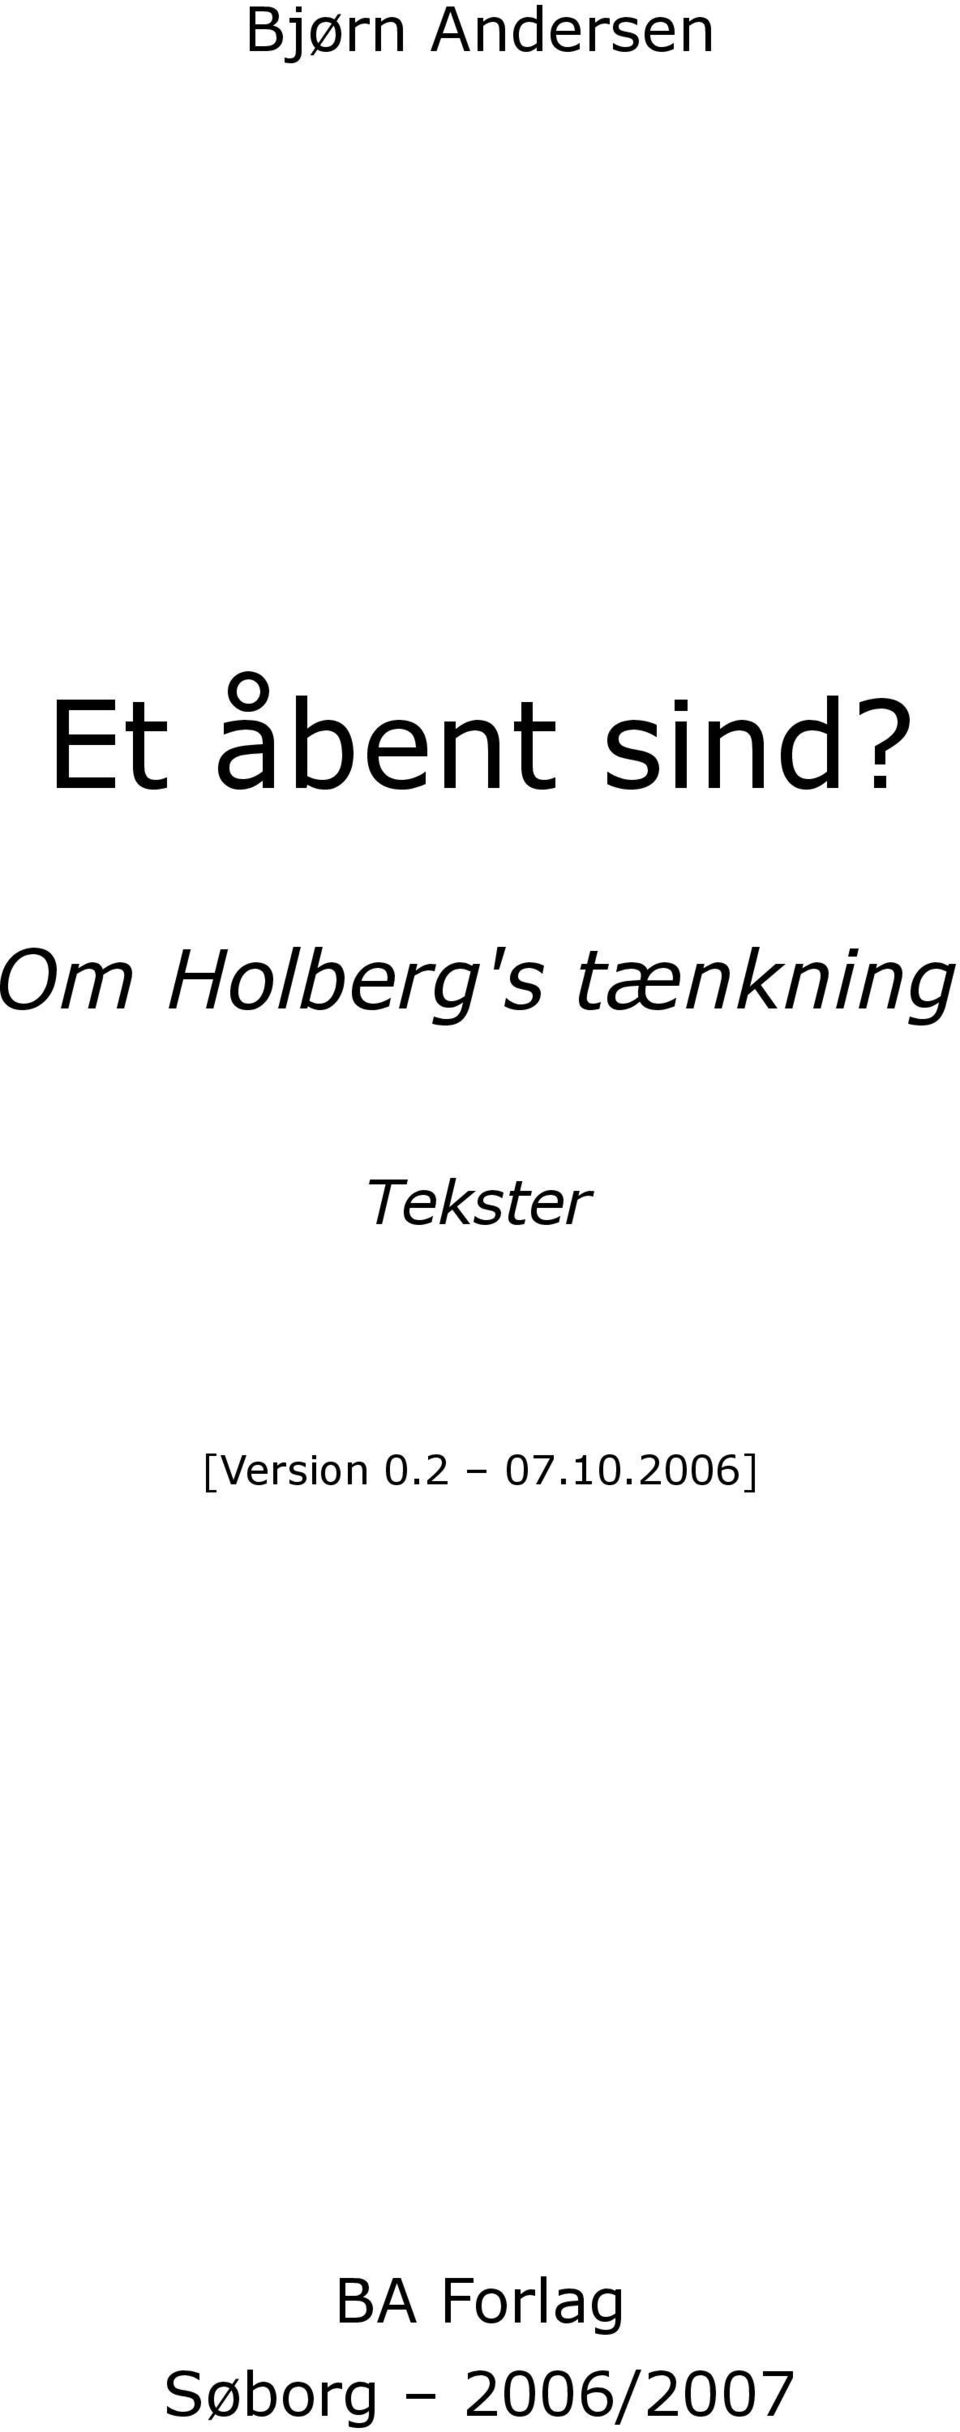 Tekster [Version 0.2 07.